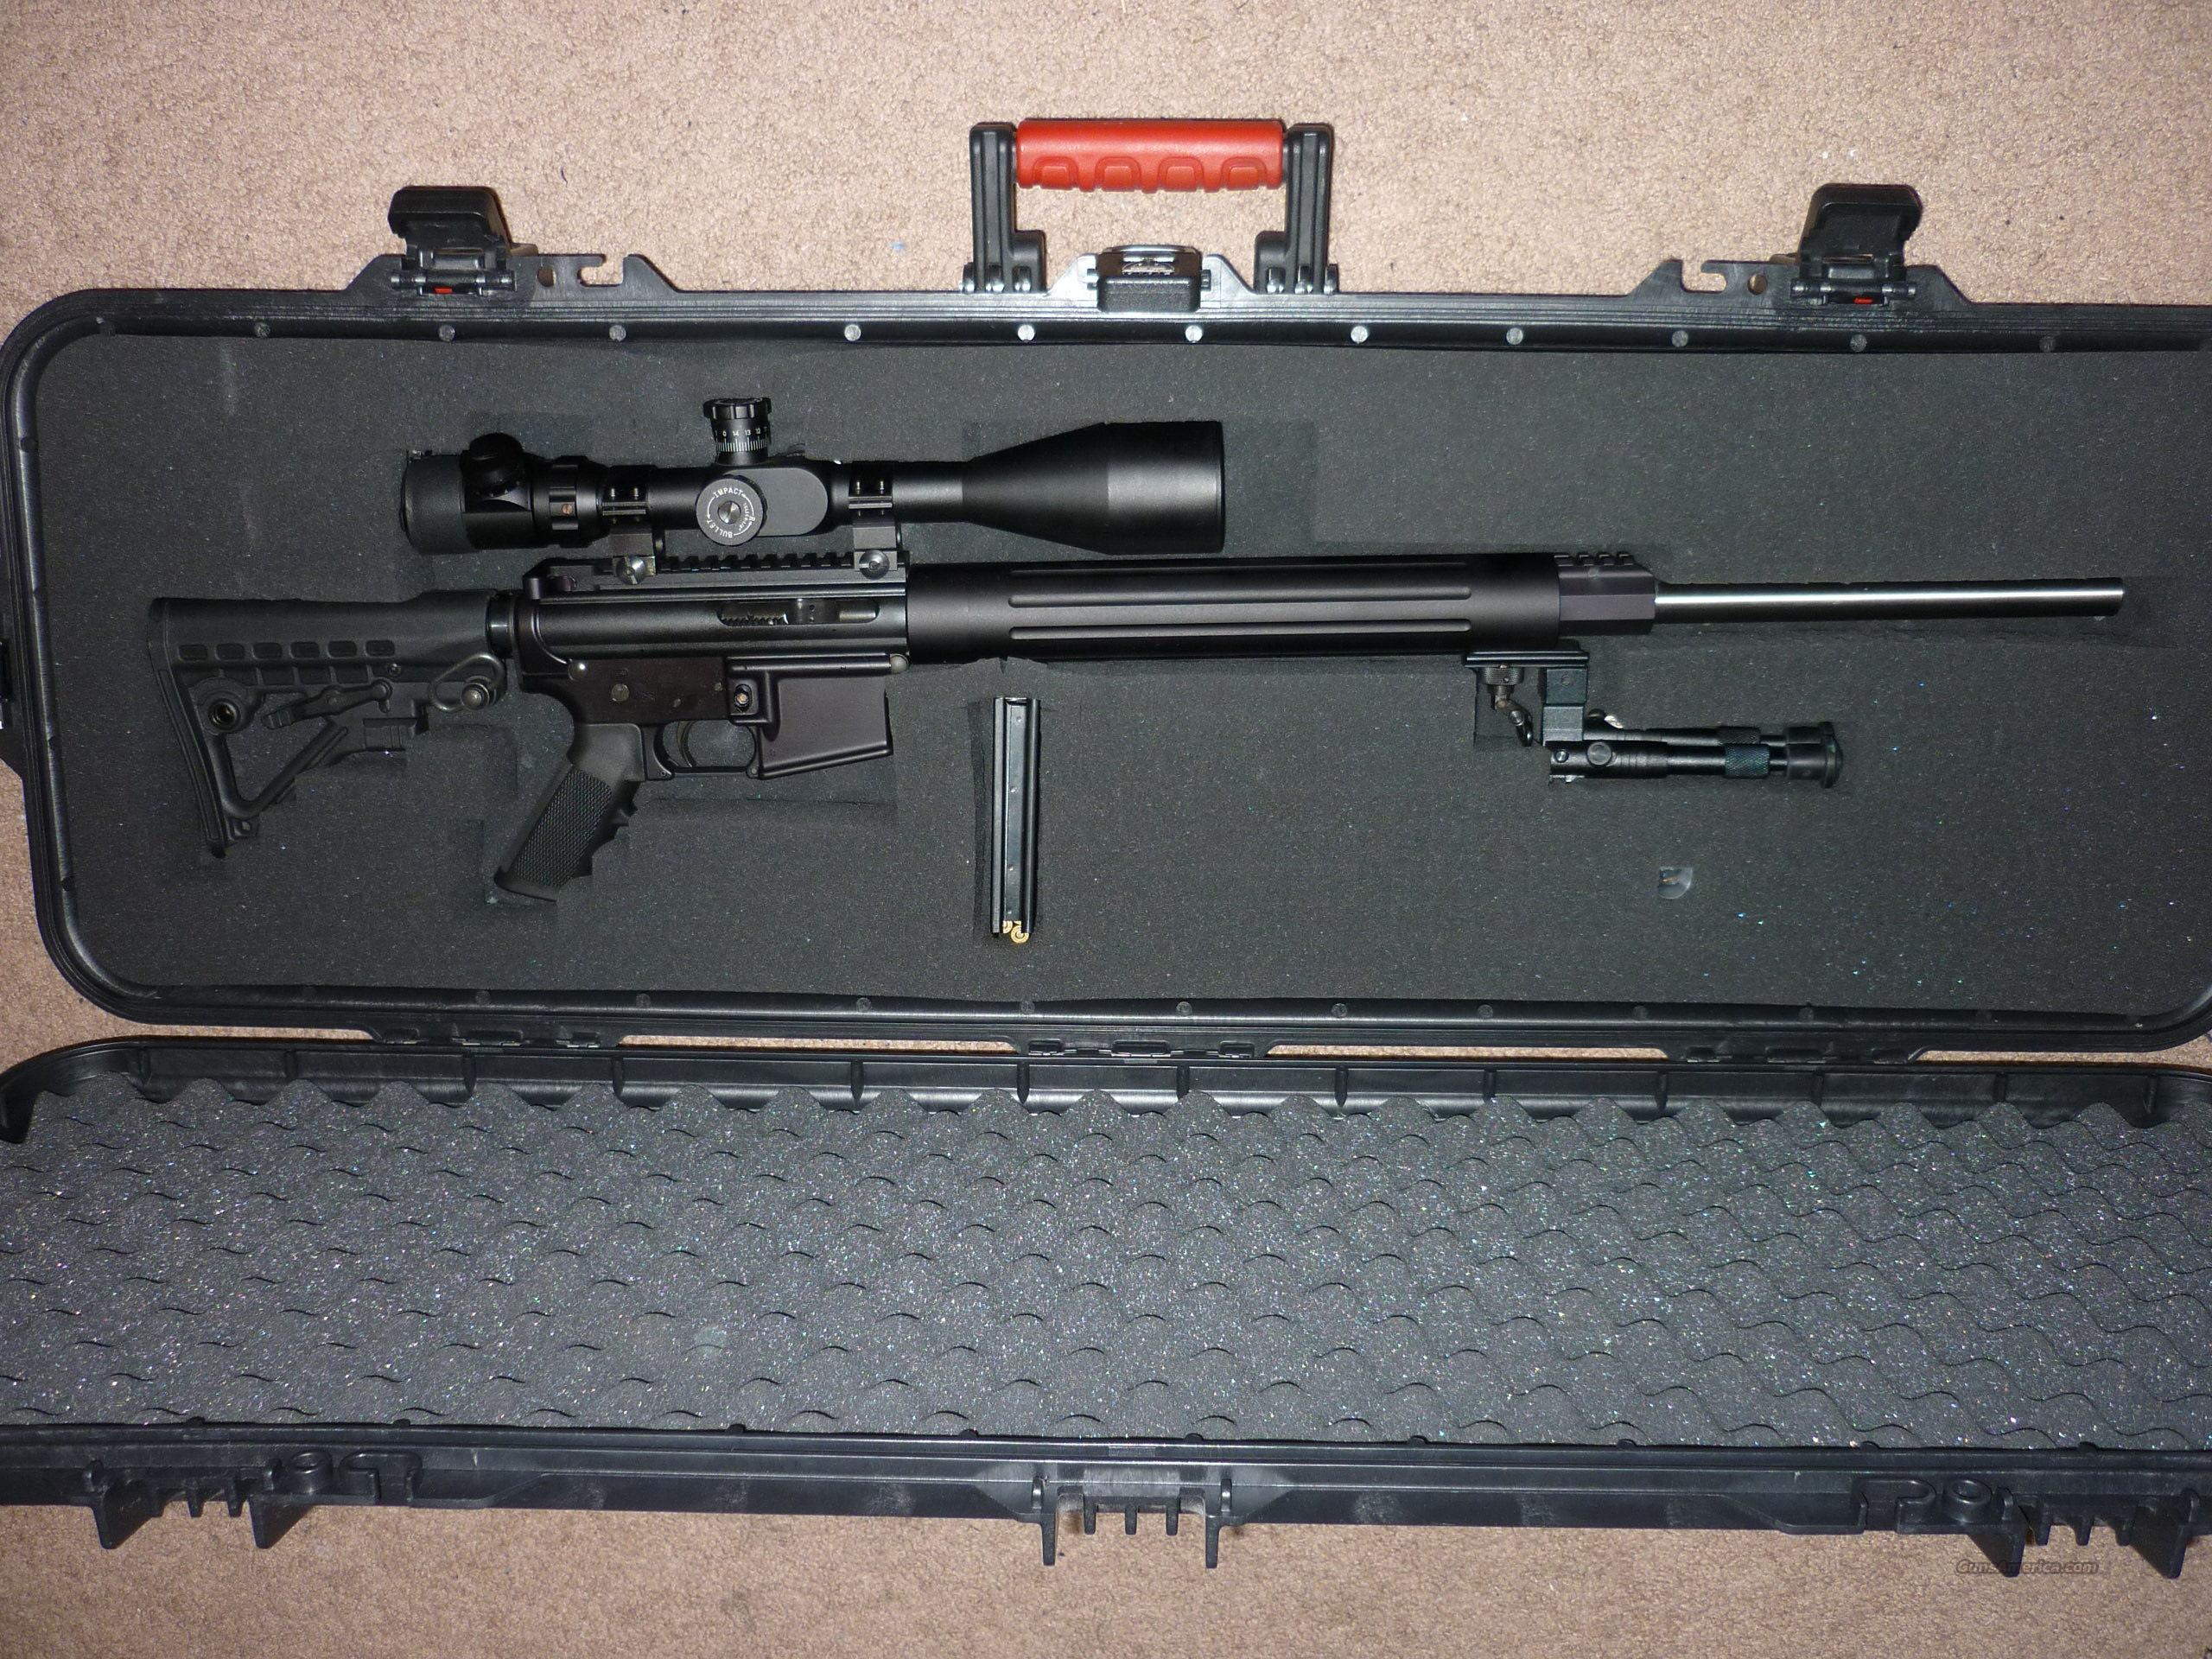 AR-15 based Sniper Rifle  Guns > Rifles > AR-15 Rifles - Small Manufacturers > Complete Rifle